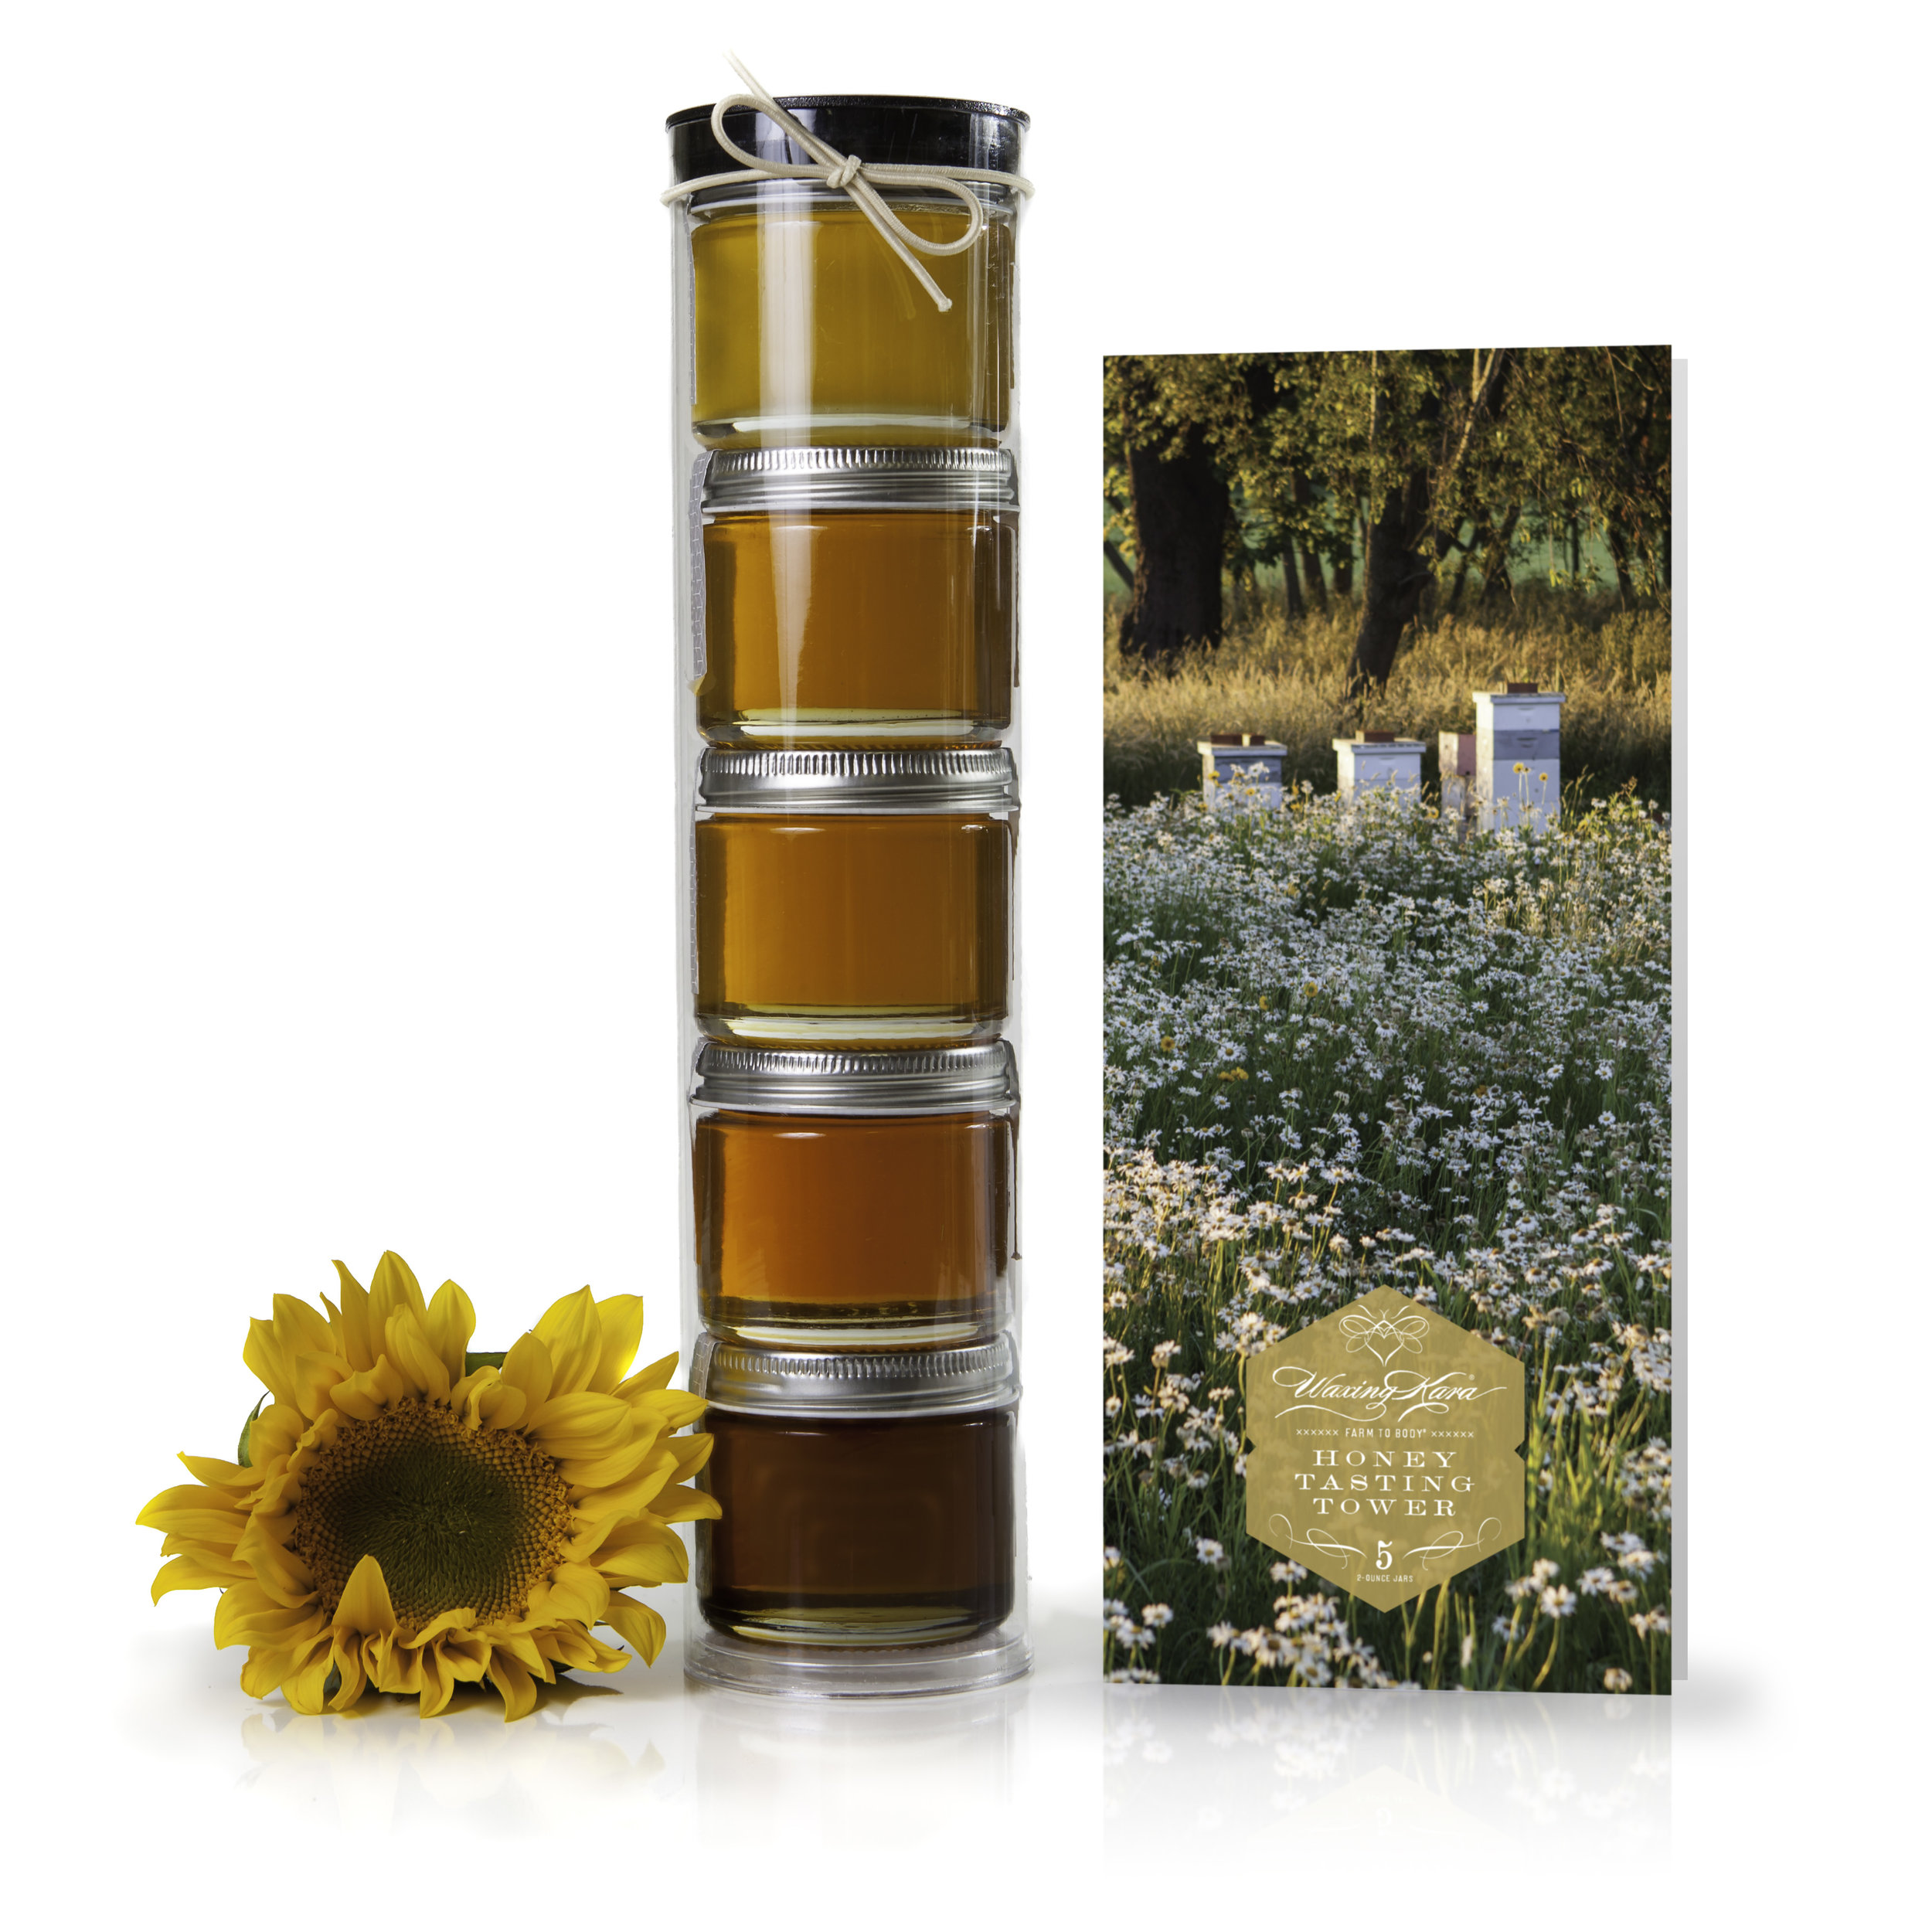 #8: Waxing Kara-Honey Tasting Tower - This Honey Tasting offers a selection of pure, raw, Kosher honey from different geographical and plant sources. You'll have five different 2-ounce portions to share with friends and family.